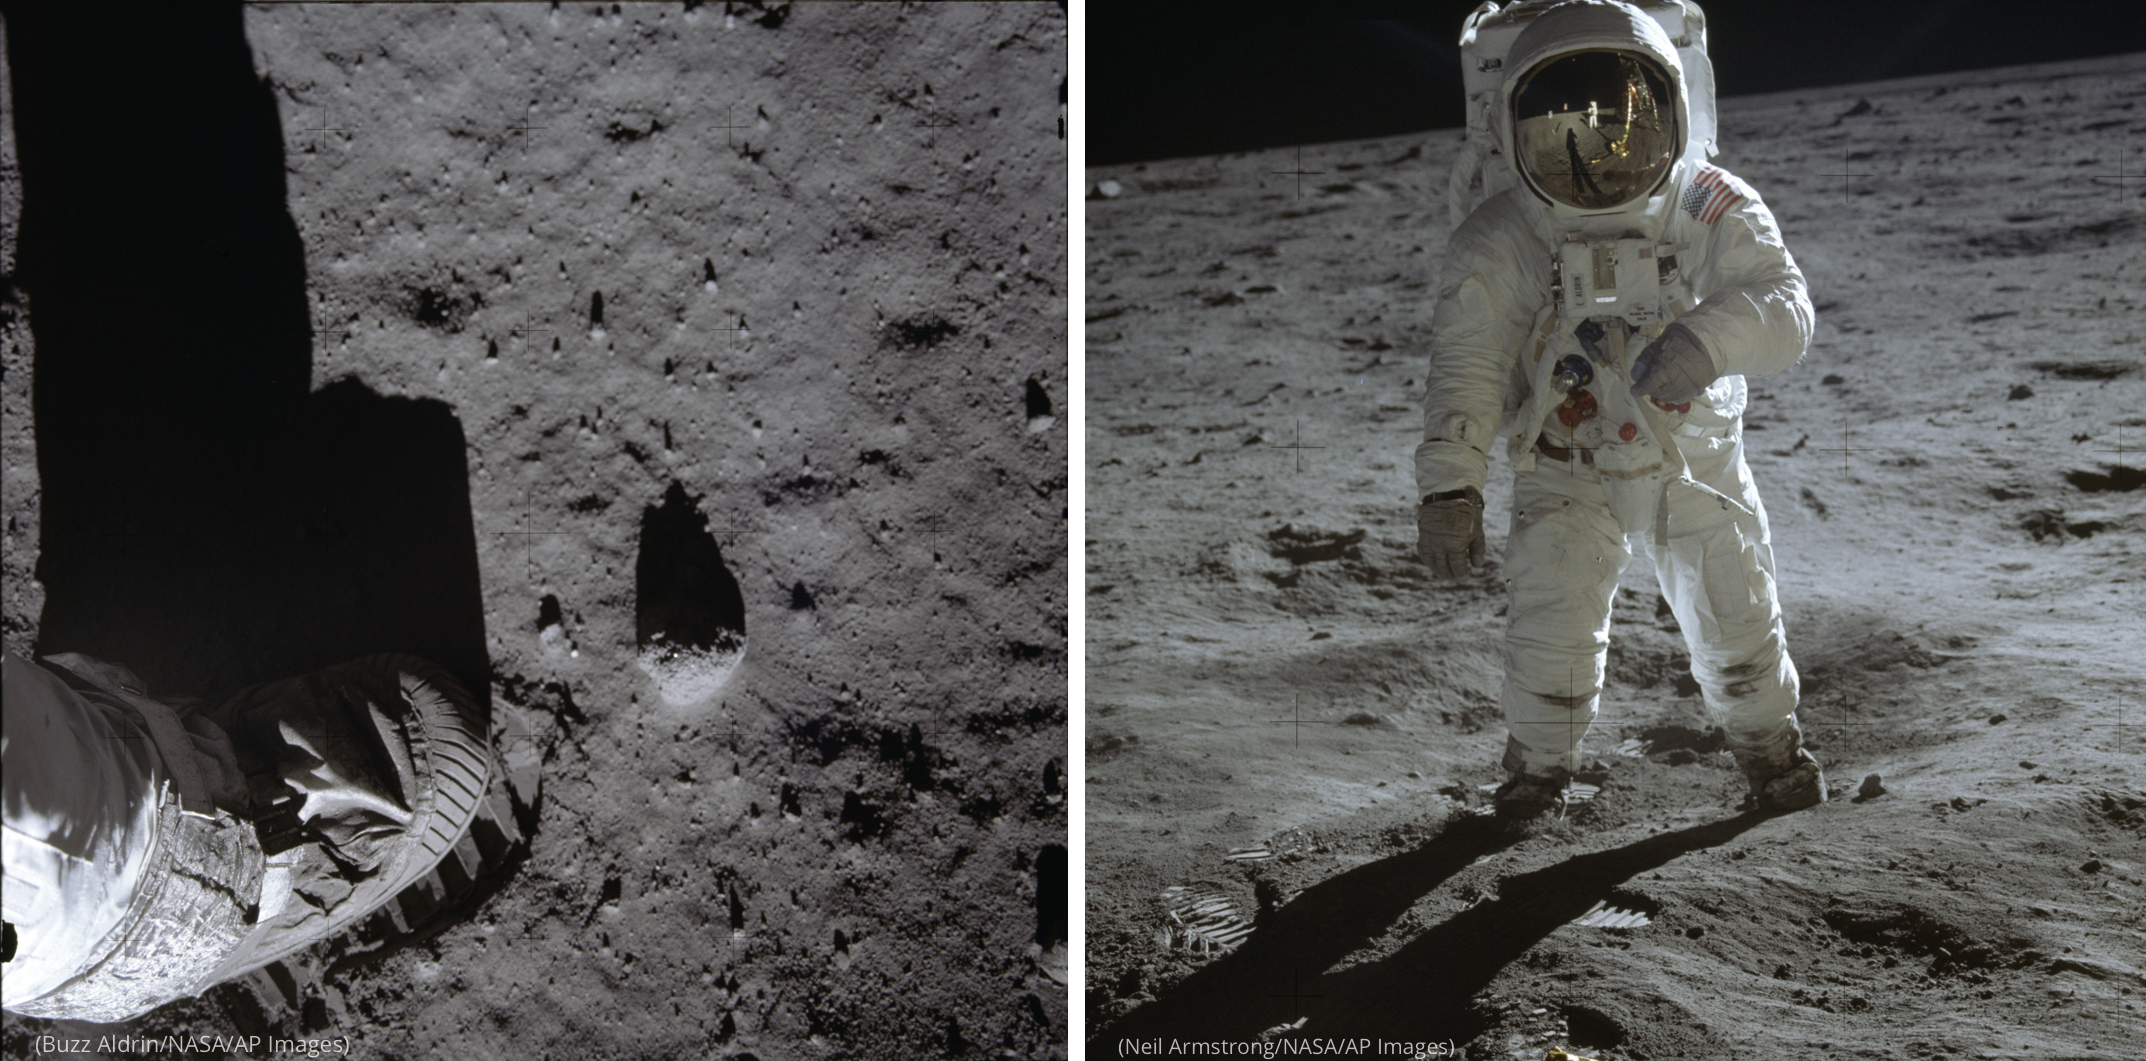 Photo of foot on surface of moon (Buzz Aldrin/NASA/AP Images) next to photo of spacesuited man on surface of moon (Neil Armstrong/NASA/AP Images)